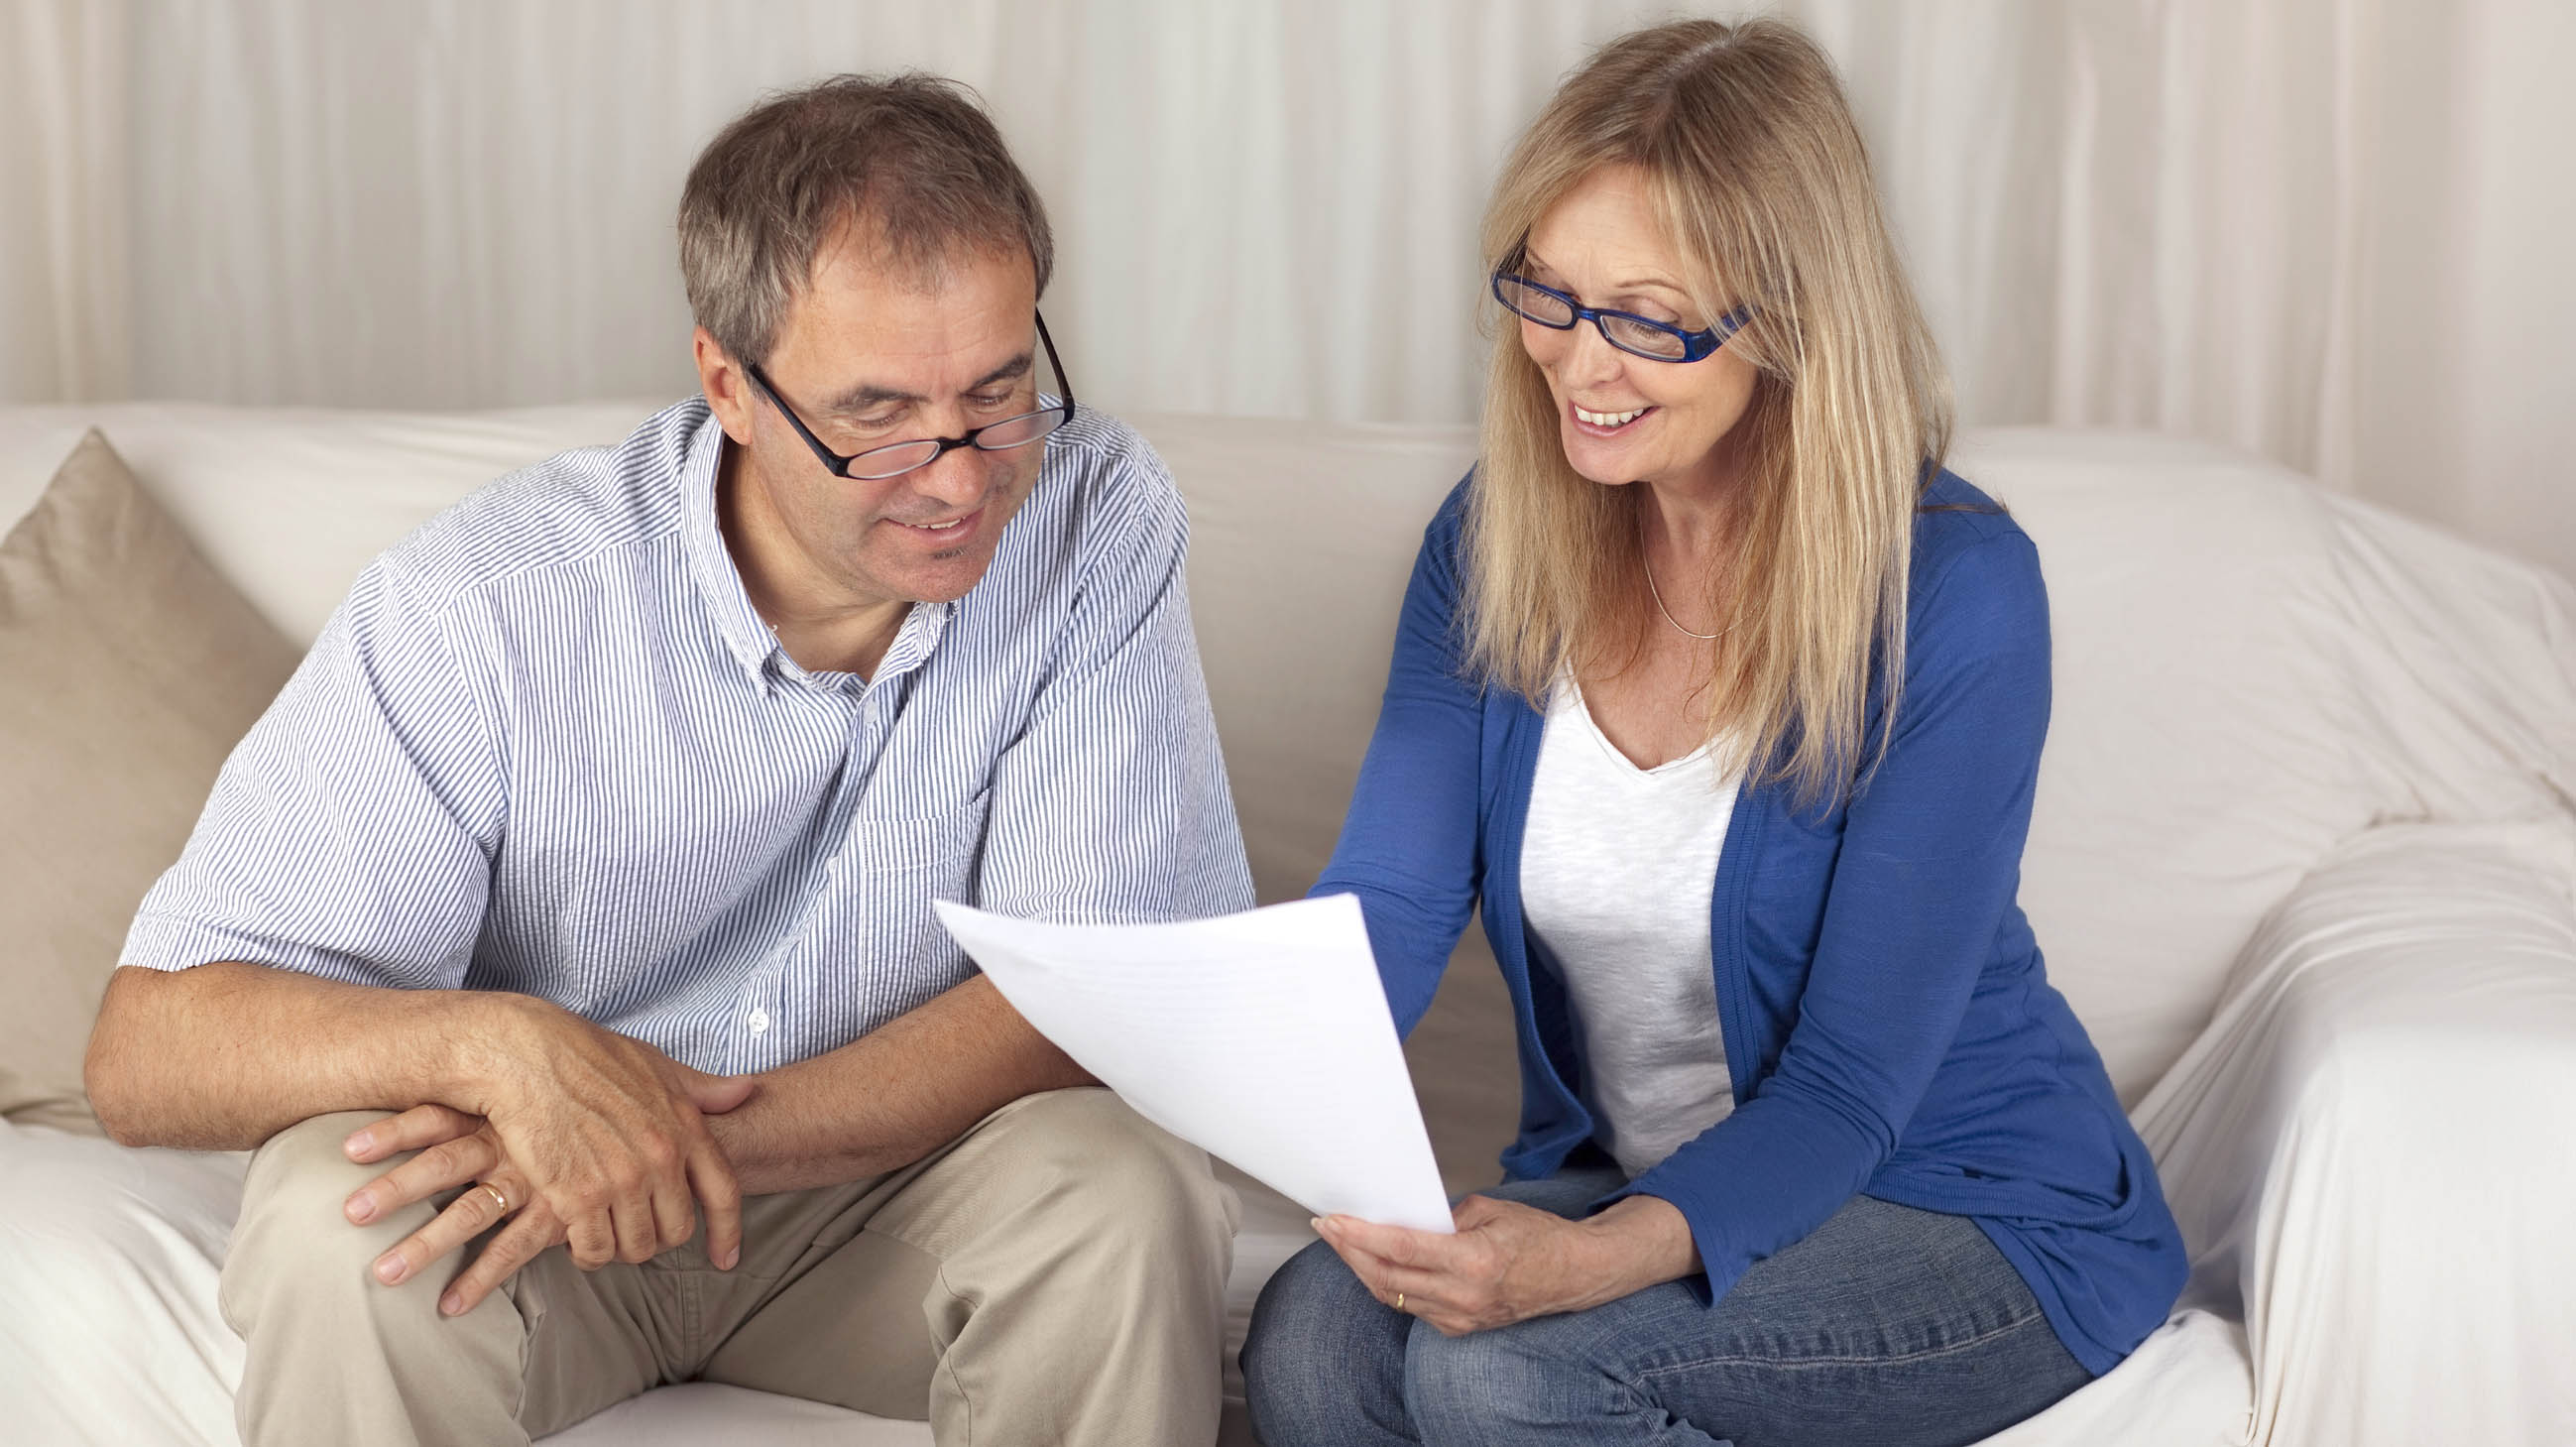 Buy cheap essay papers to right